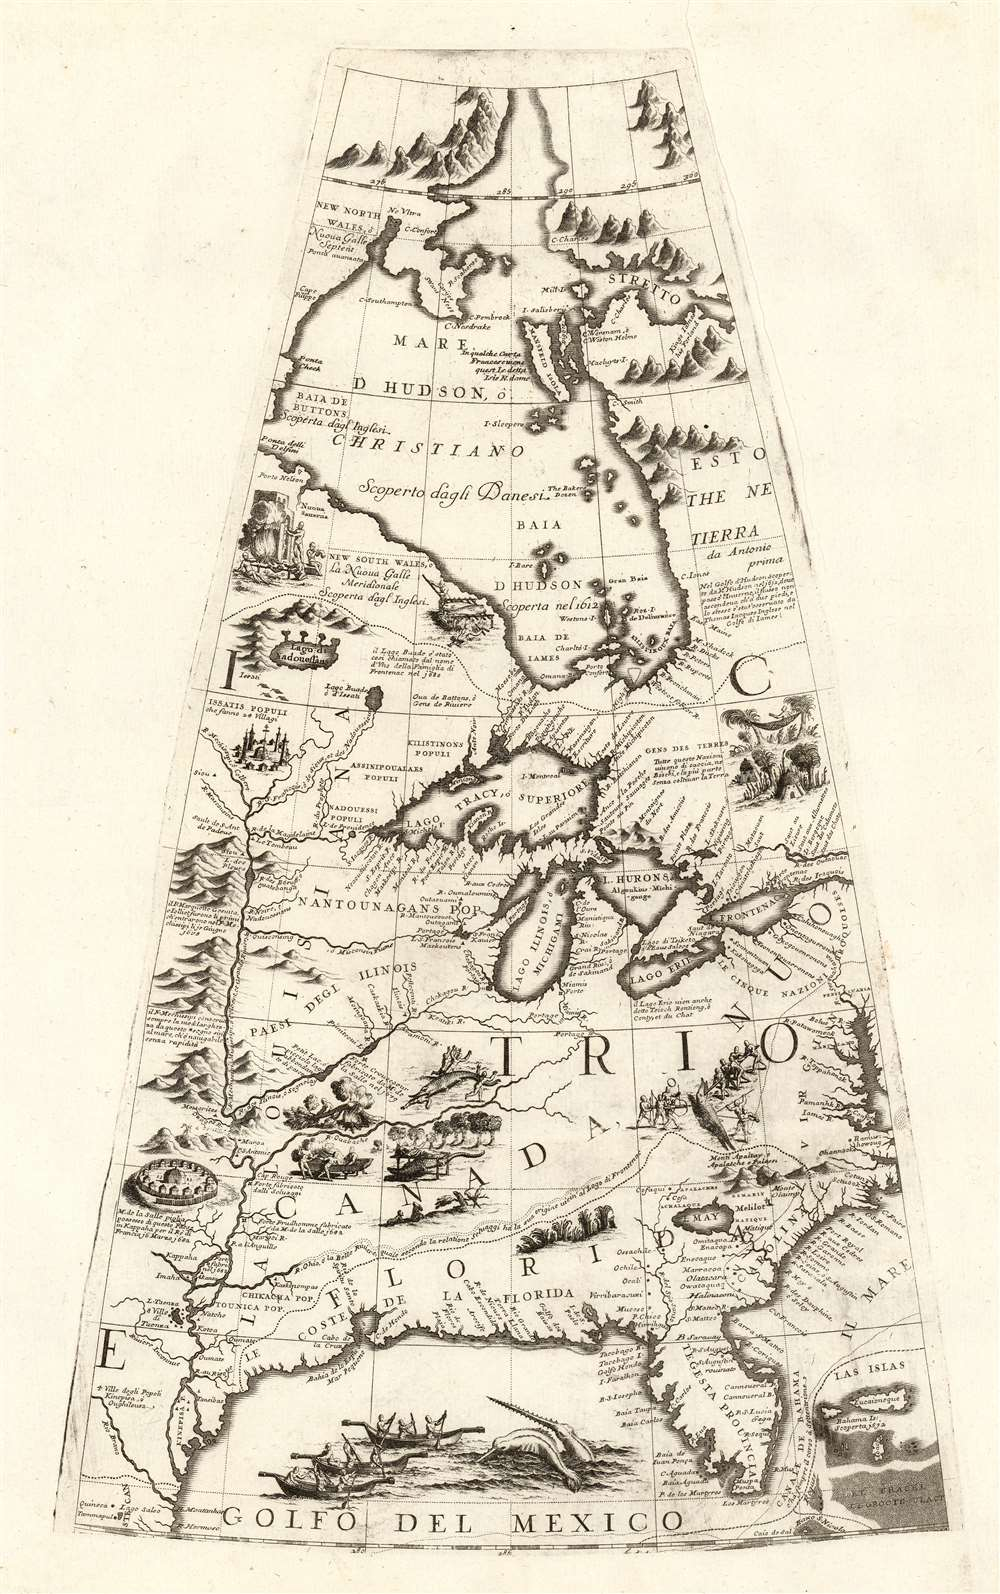 1688 / 1697 Coronelli Globe Gore of The Great Lakes, Mississippi R., Hudson's Bay, Florida